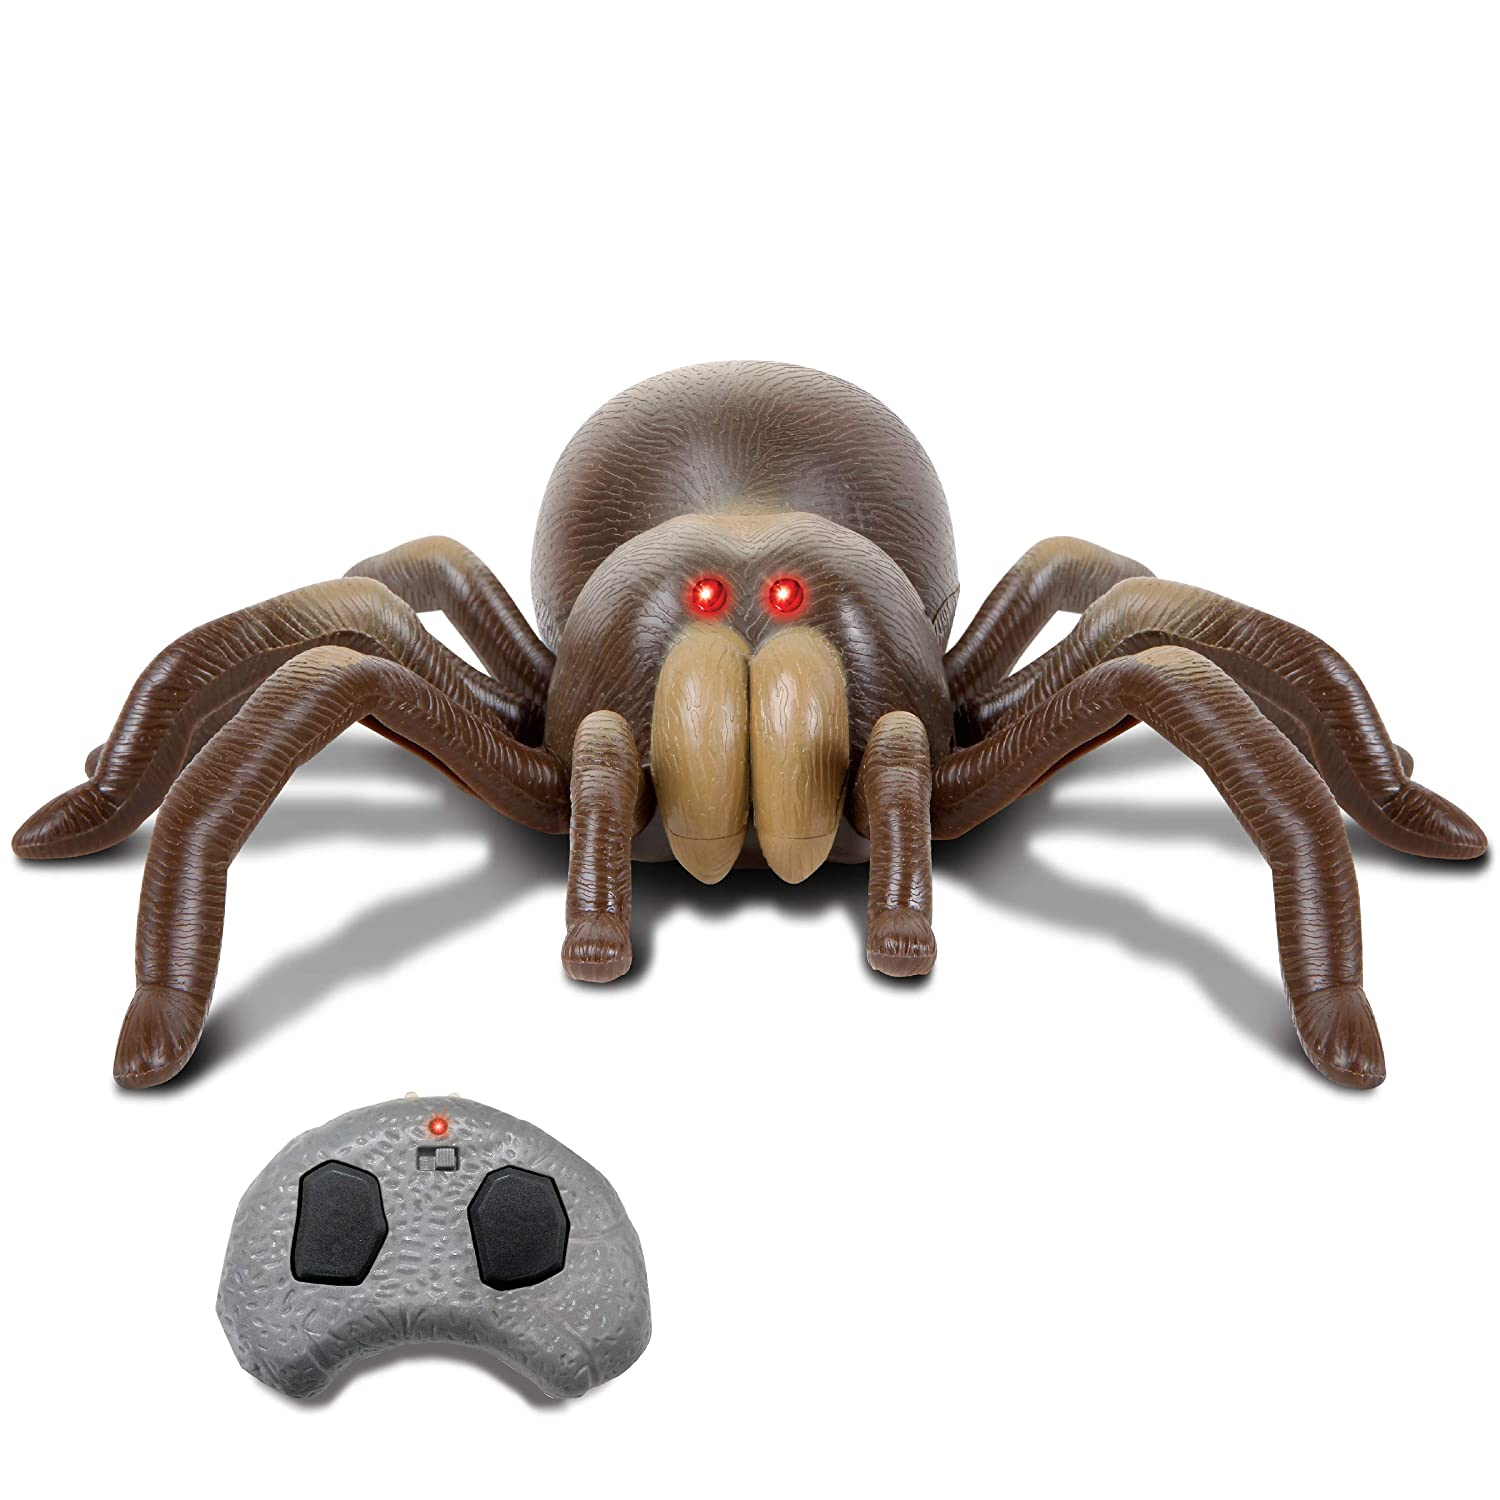 Top 7 Best Remote Control Spider Toys Reviews in 2021 8